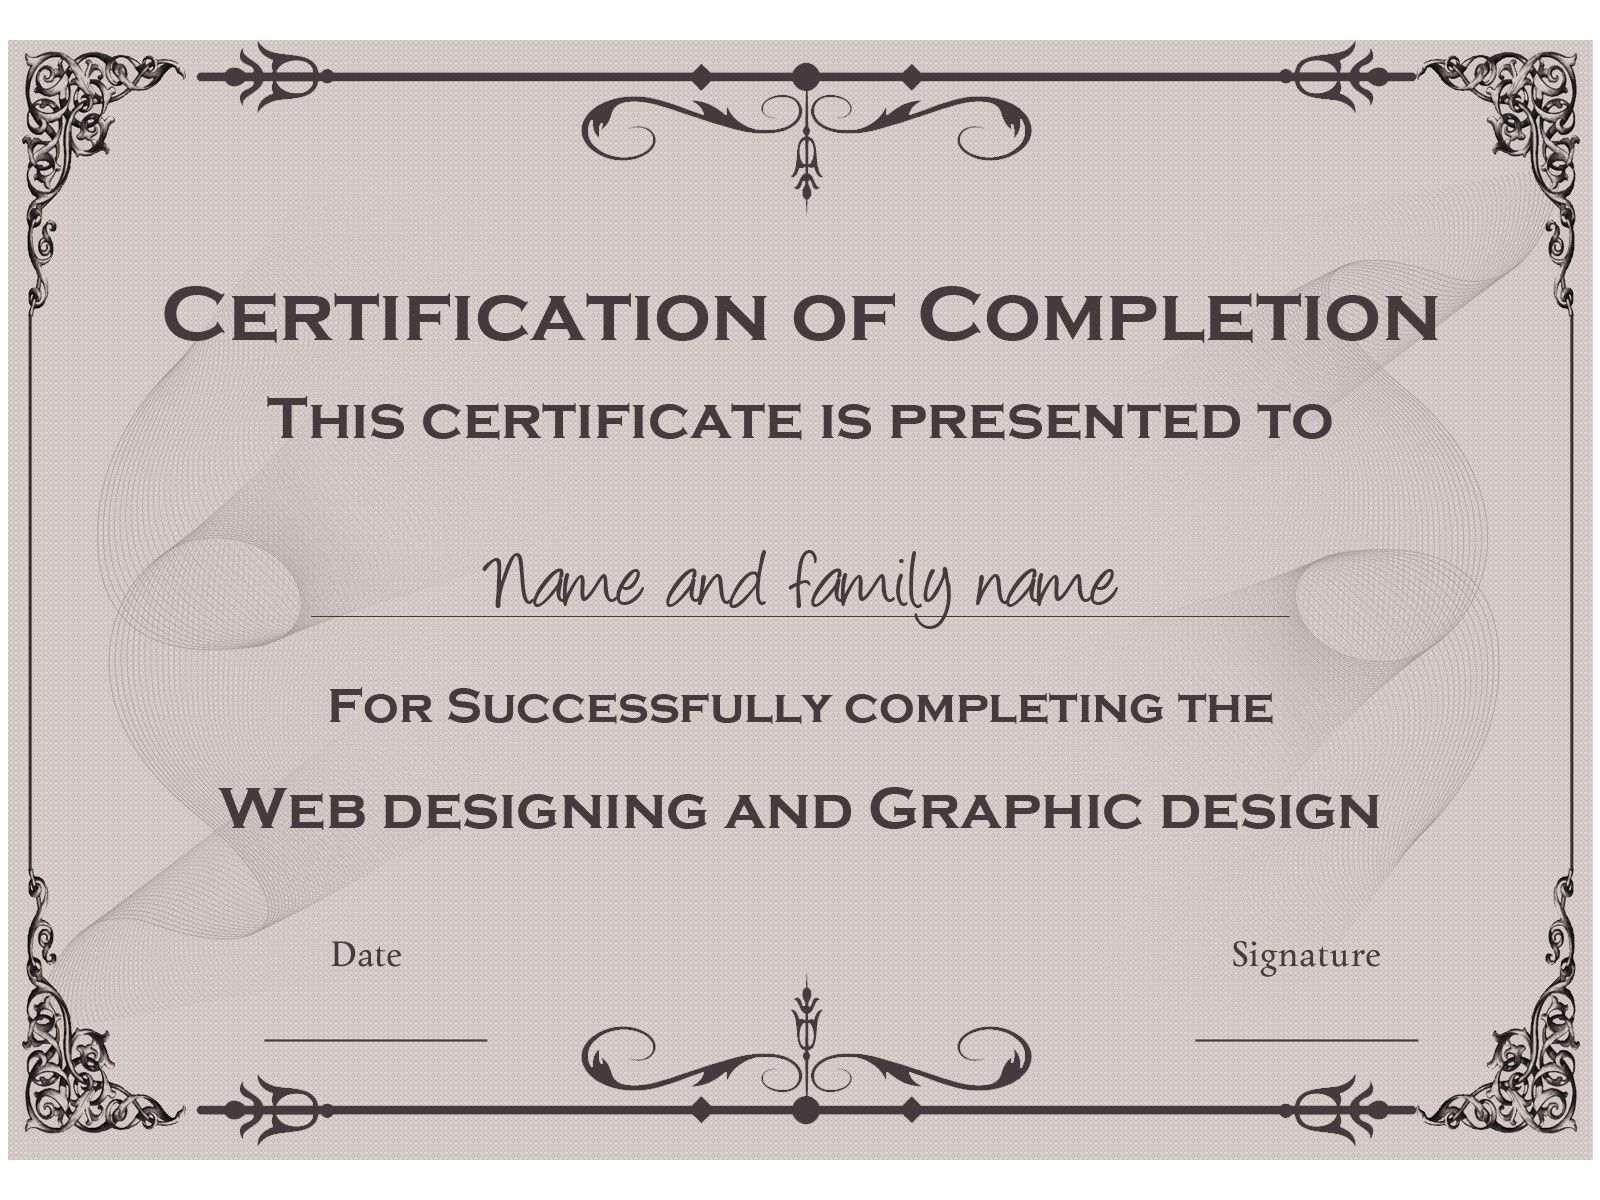 course completion certificate template course completion example certificate template you can this one and others like it for